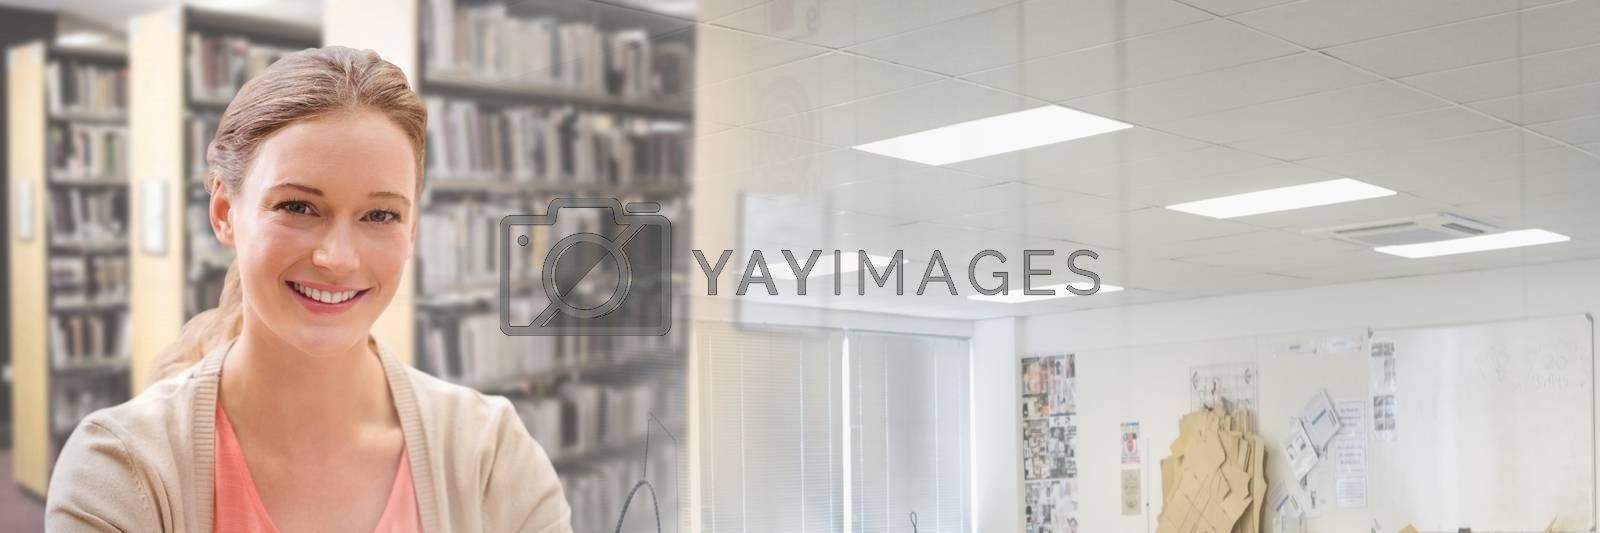 Digital composite of Student woman in education library with transition